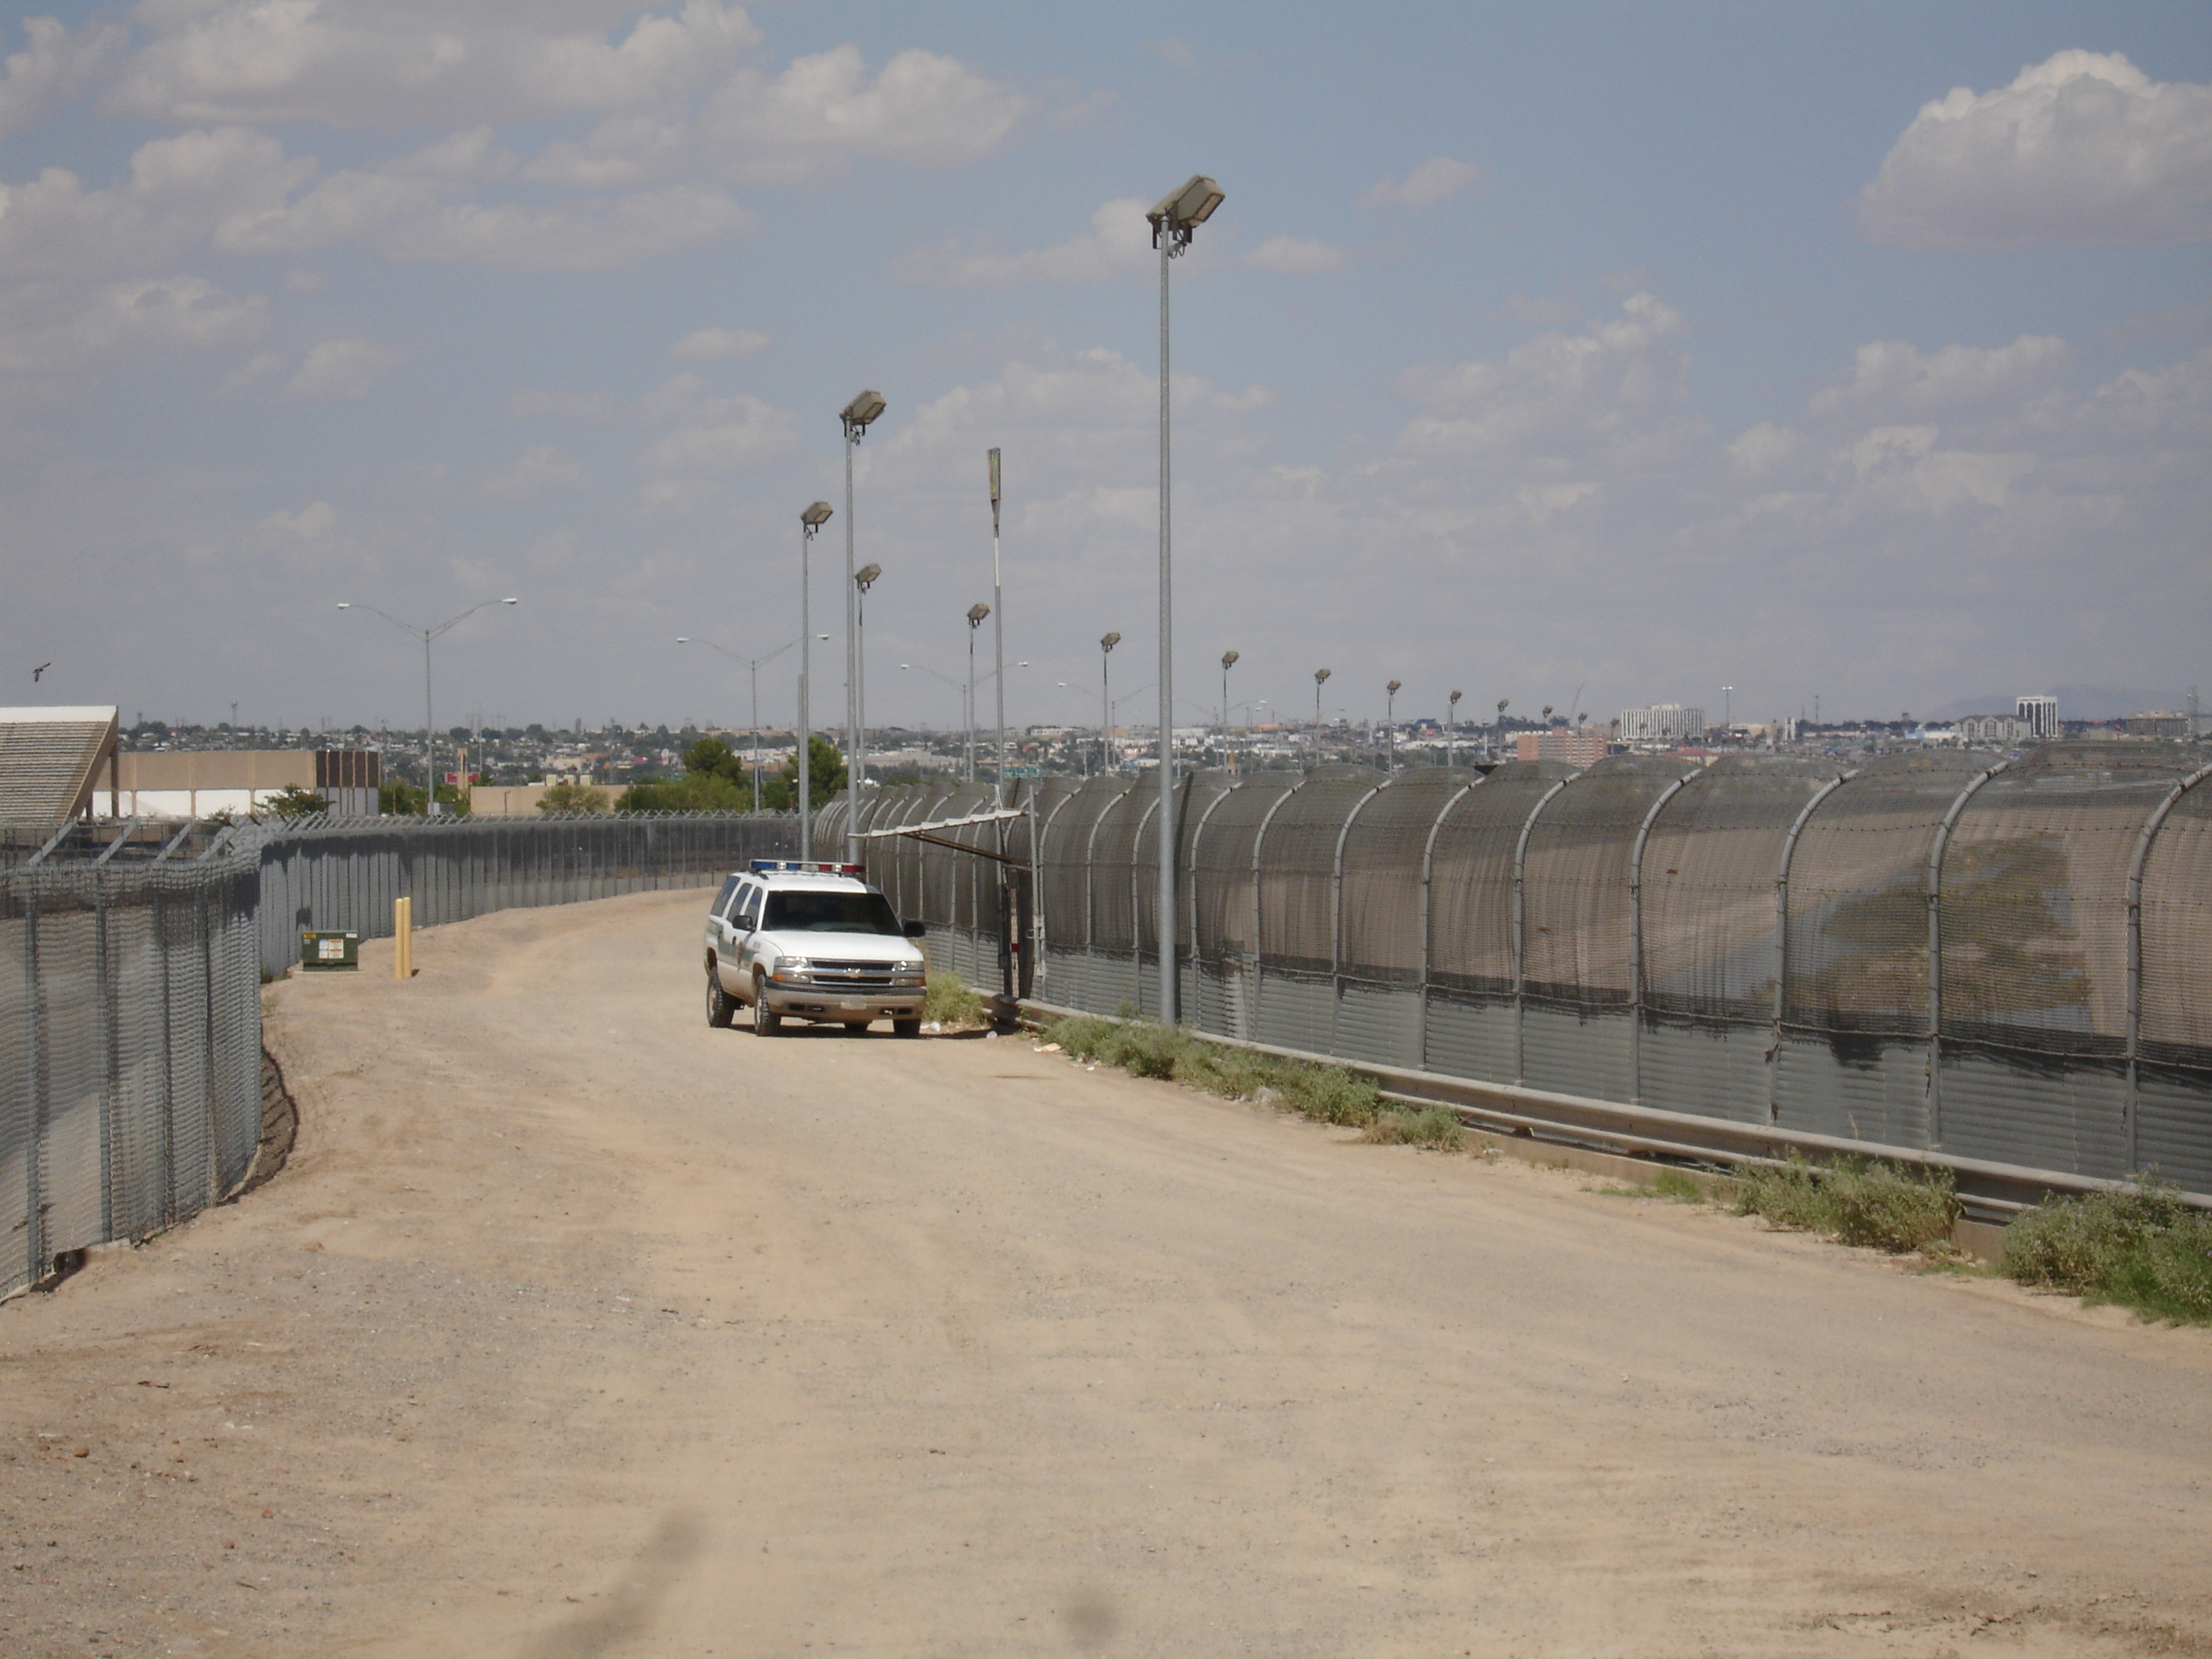 Build the wall: Mexican drug cartels using armored trucks in ongoing war along Texas border